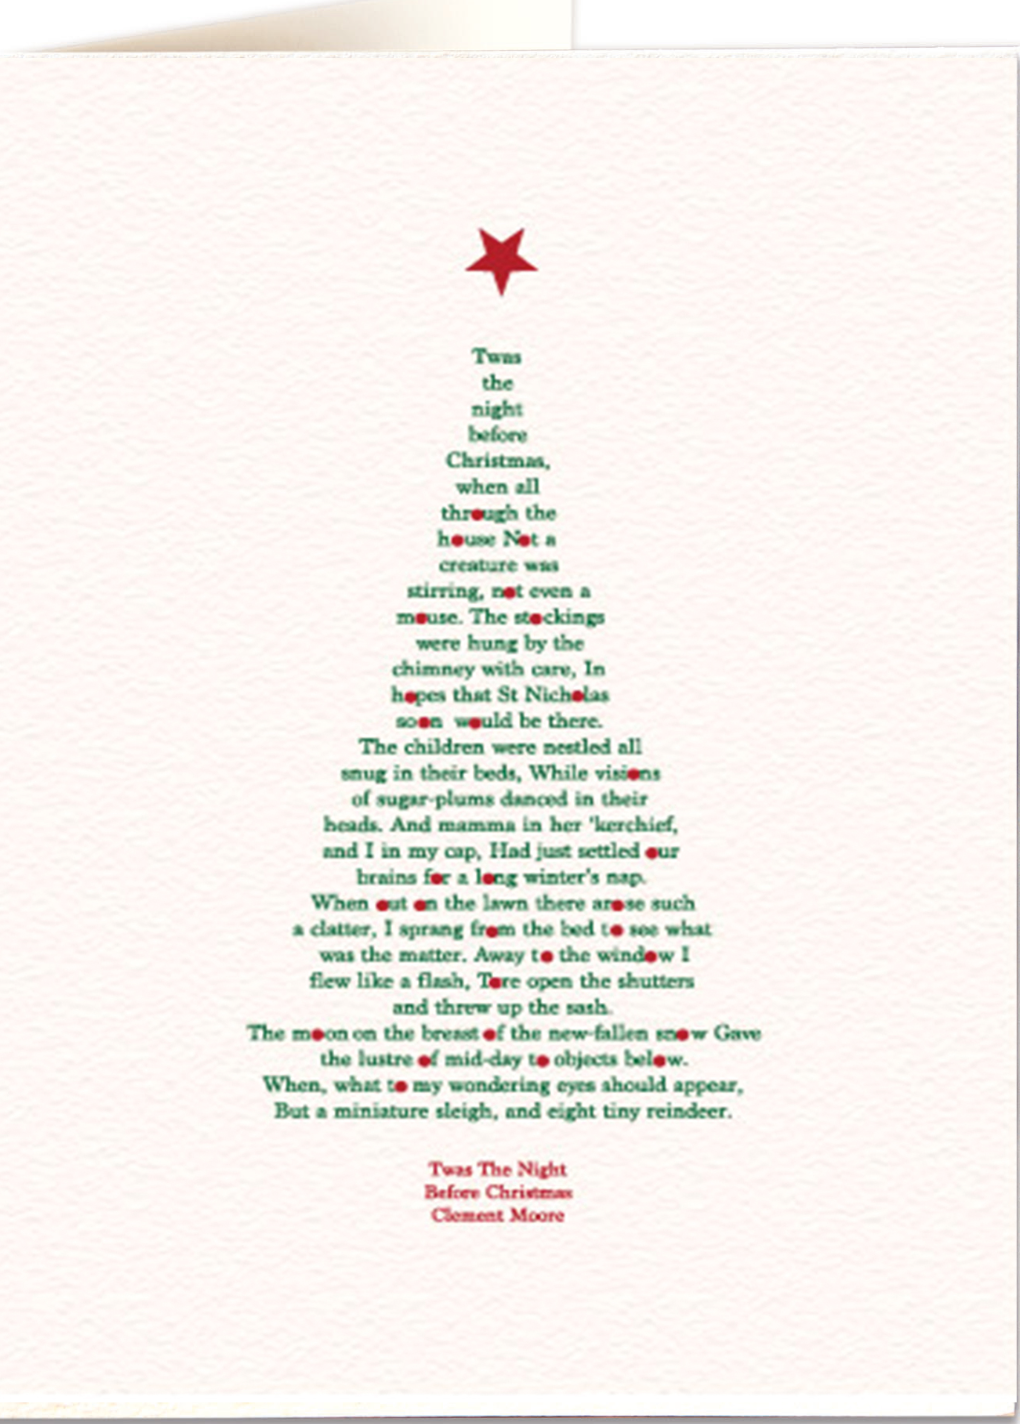 Twas the night before Christmas - Letterpress Christmas Card